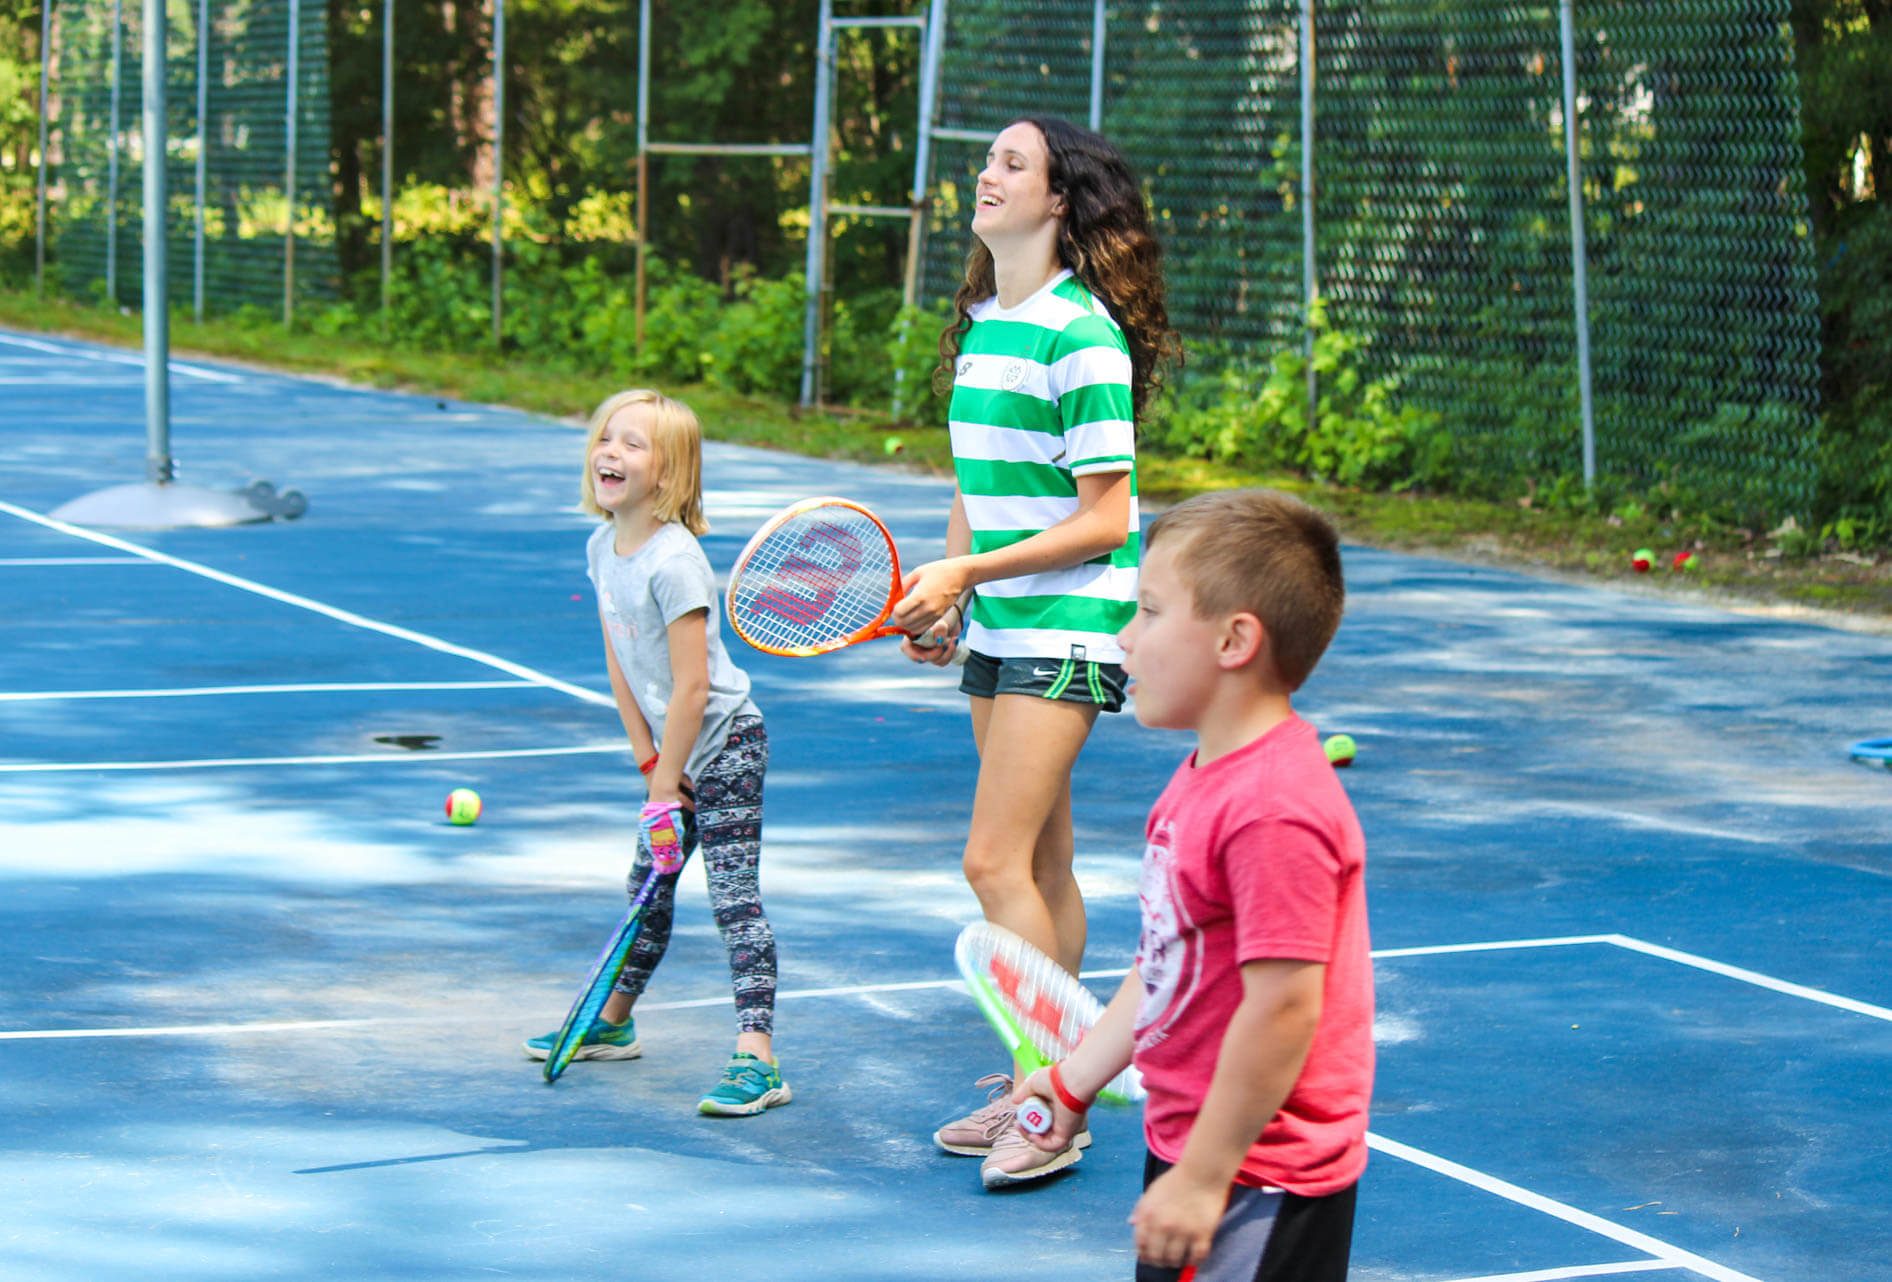 Young campers play tennis